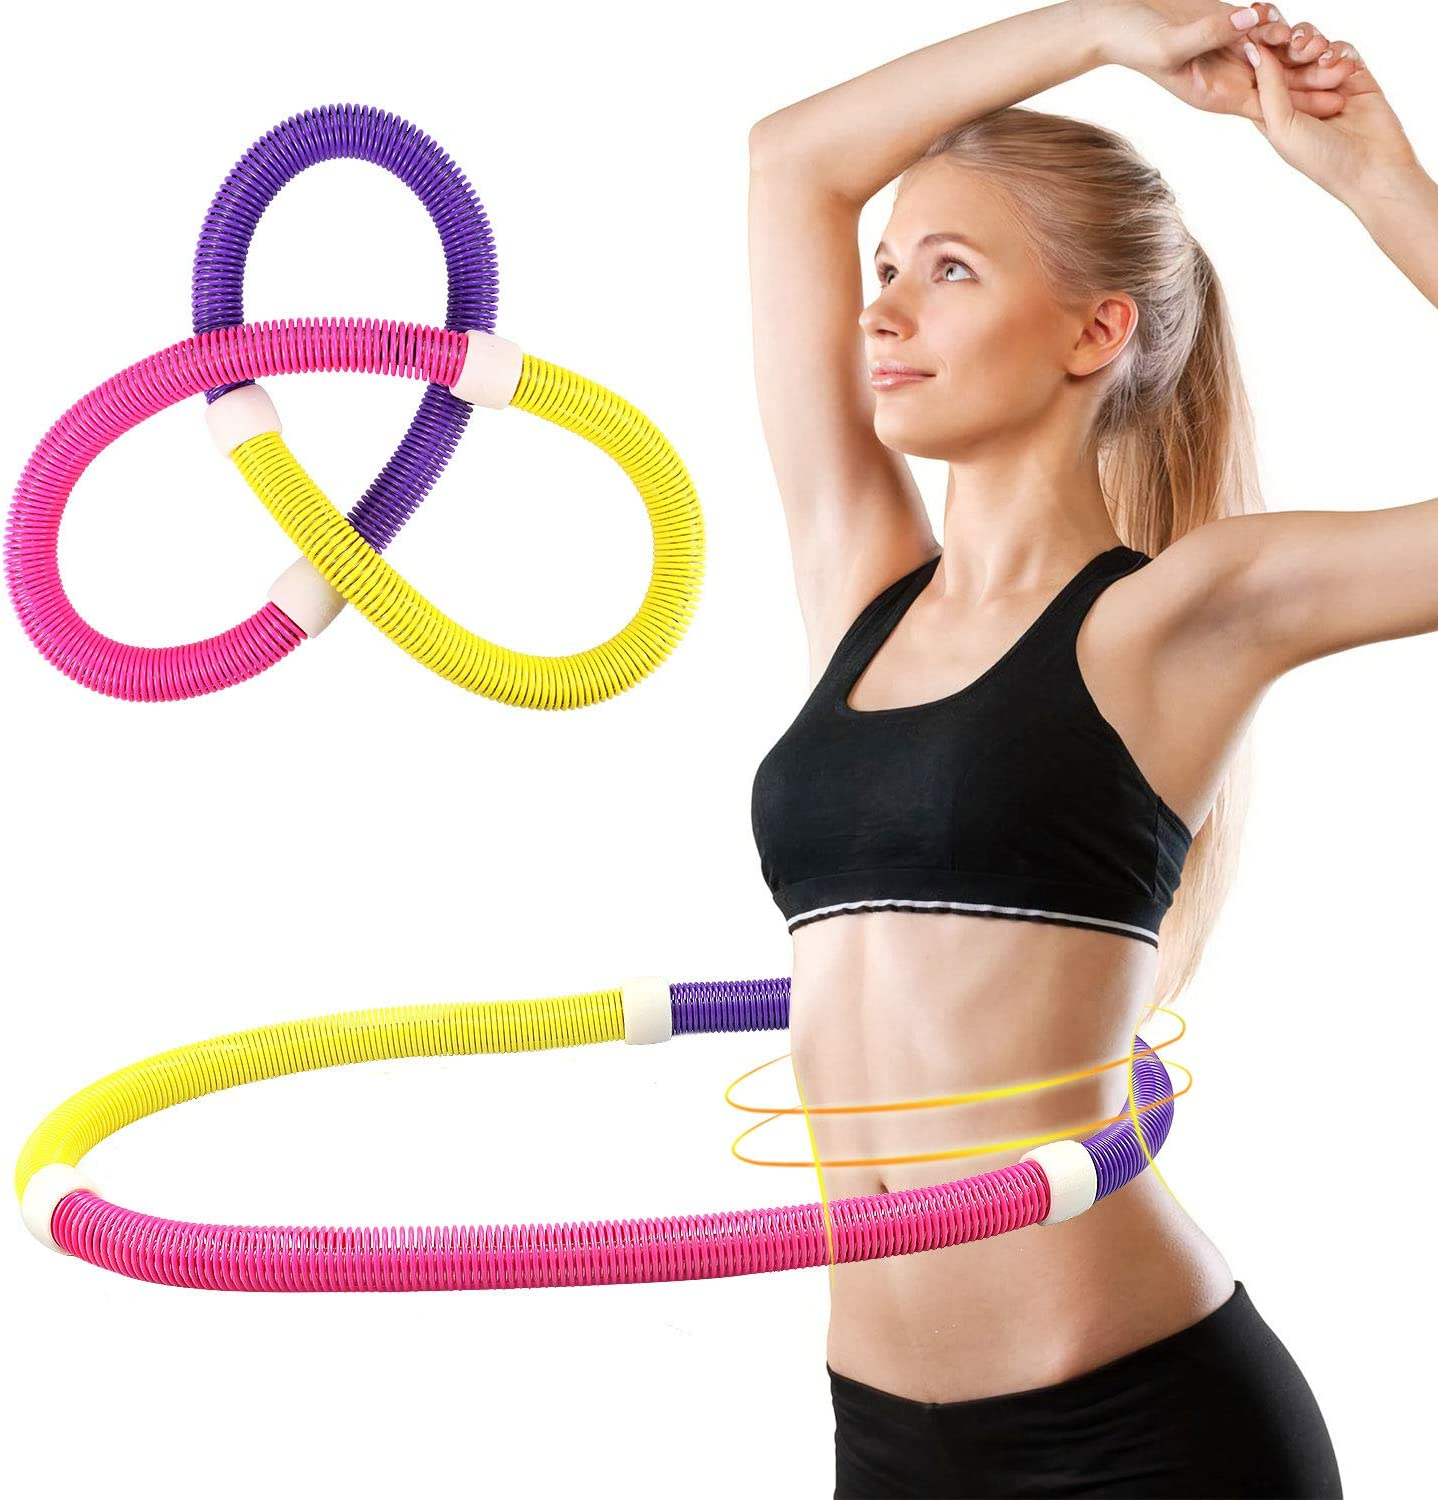 REDSEASONS Hula Hoop for Adults,Lose Weight Fast by Fun Way to Workout,Easy to Spin Green Premium Quality and Soft Padding Hula Hoop,with Free Accessory Skipping Rope